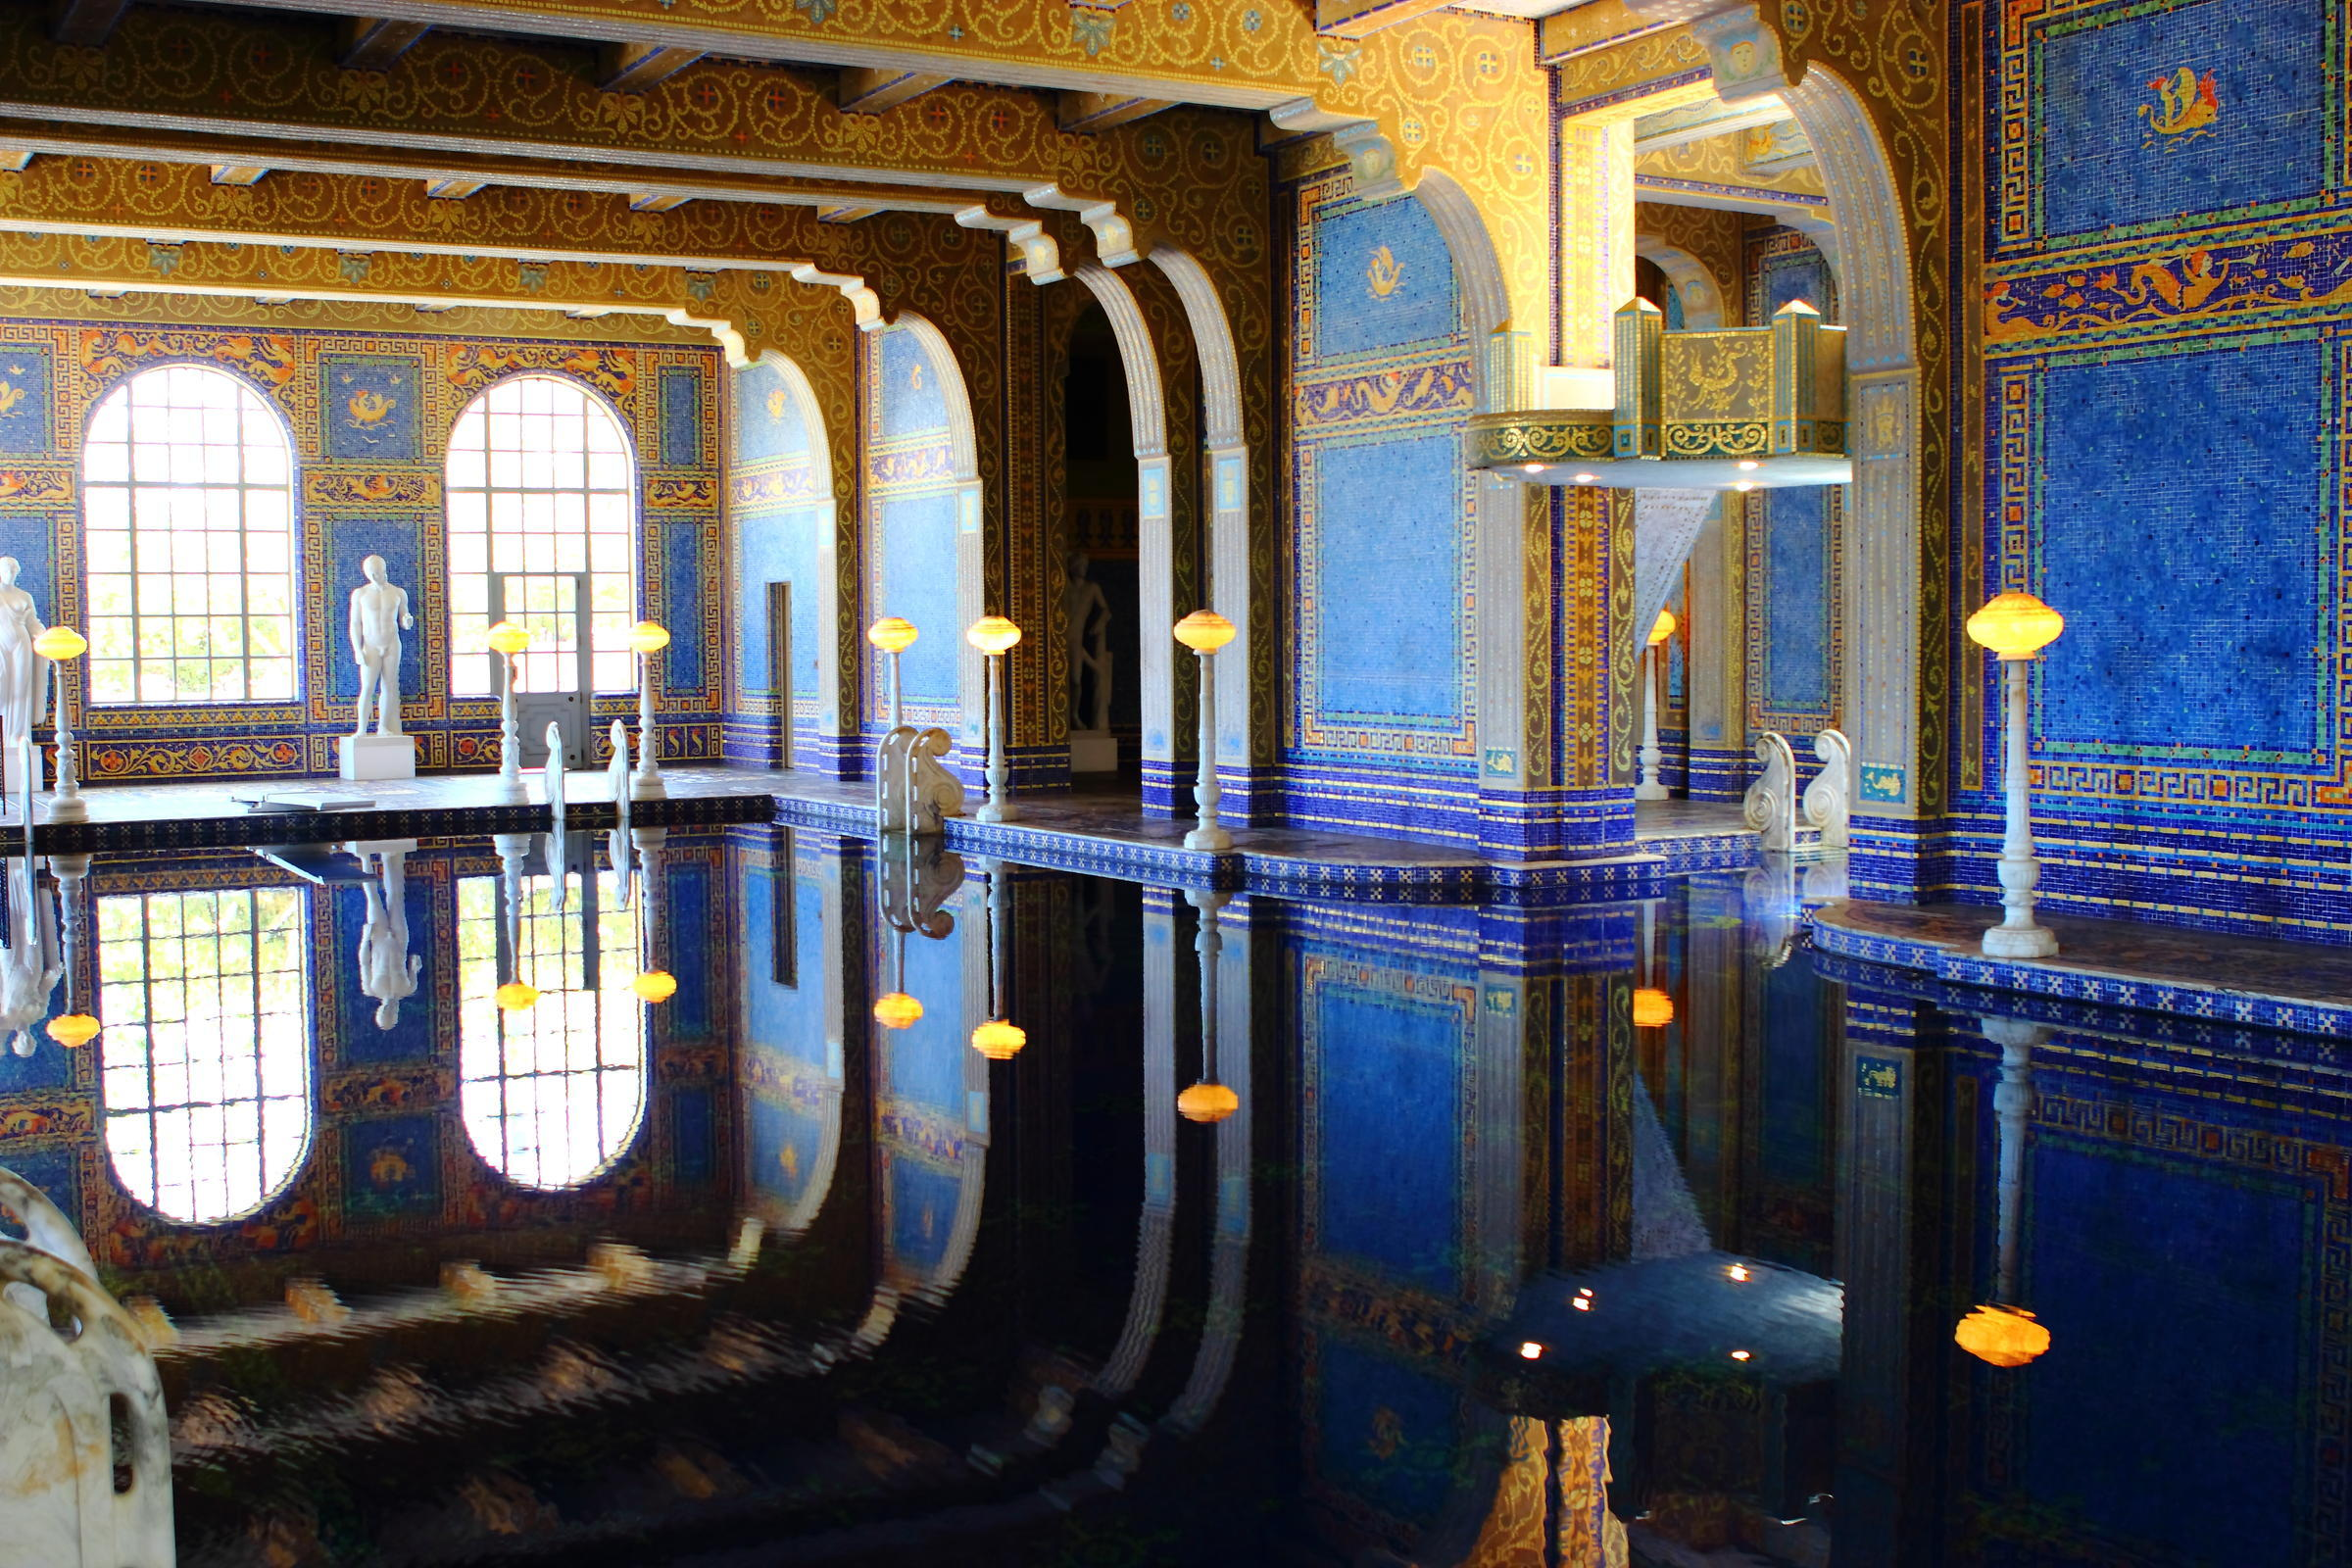 pool blue walls tile arches